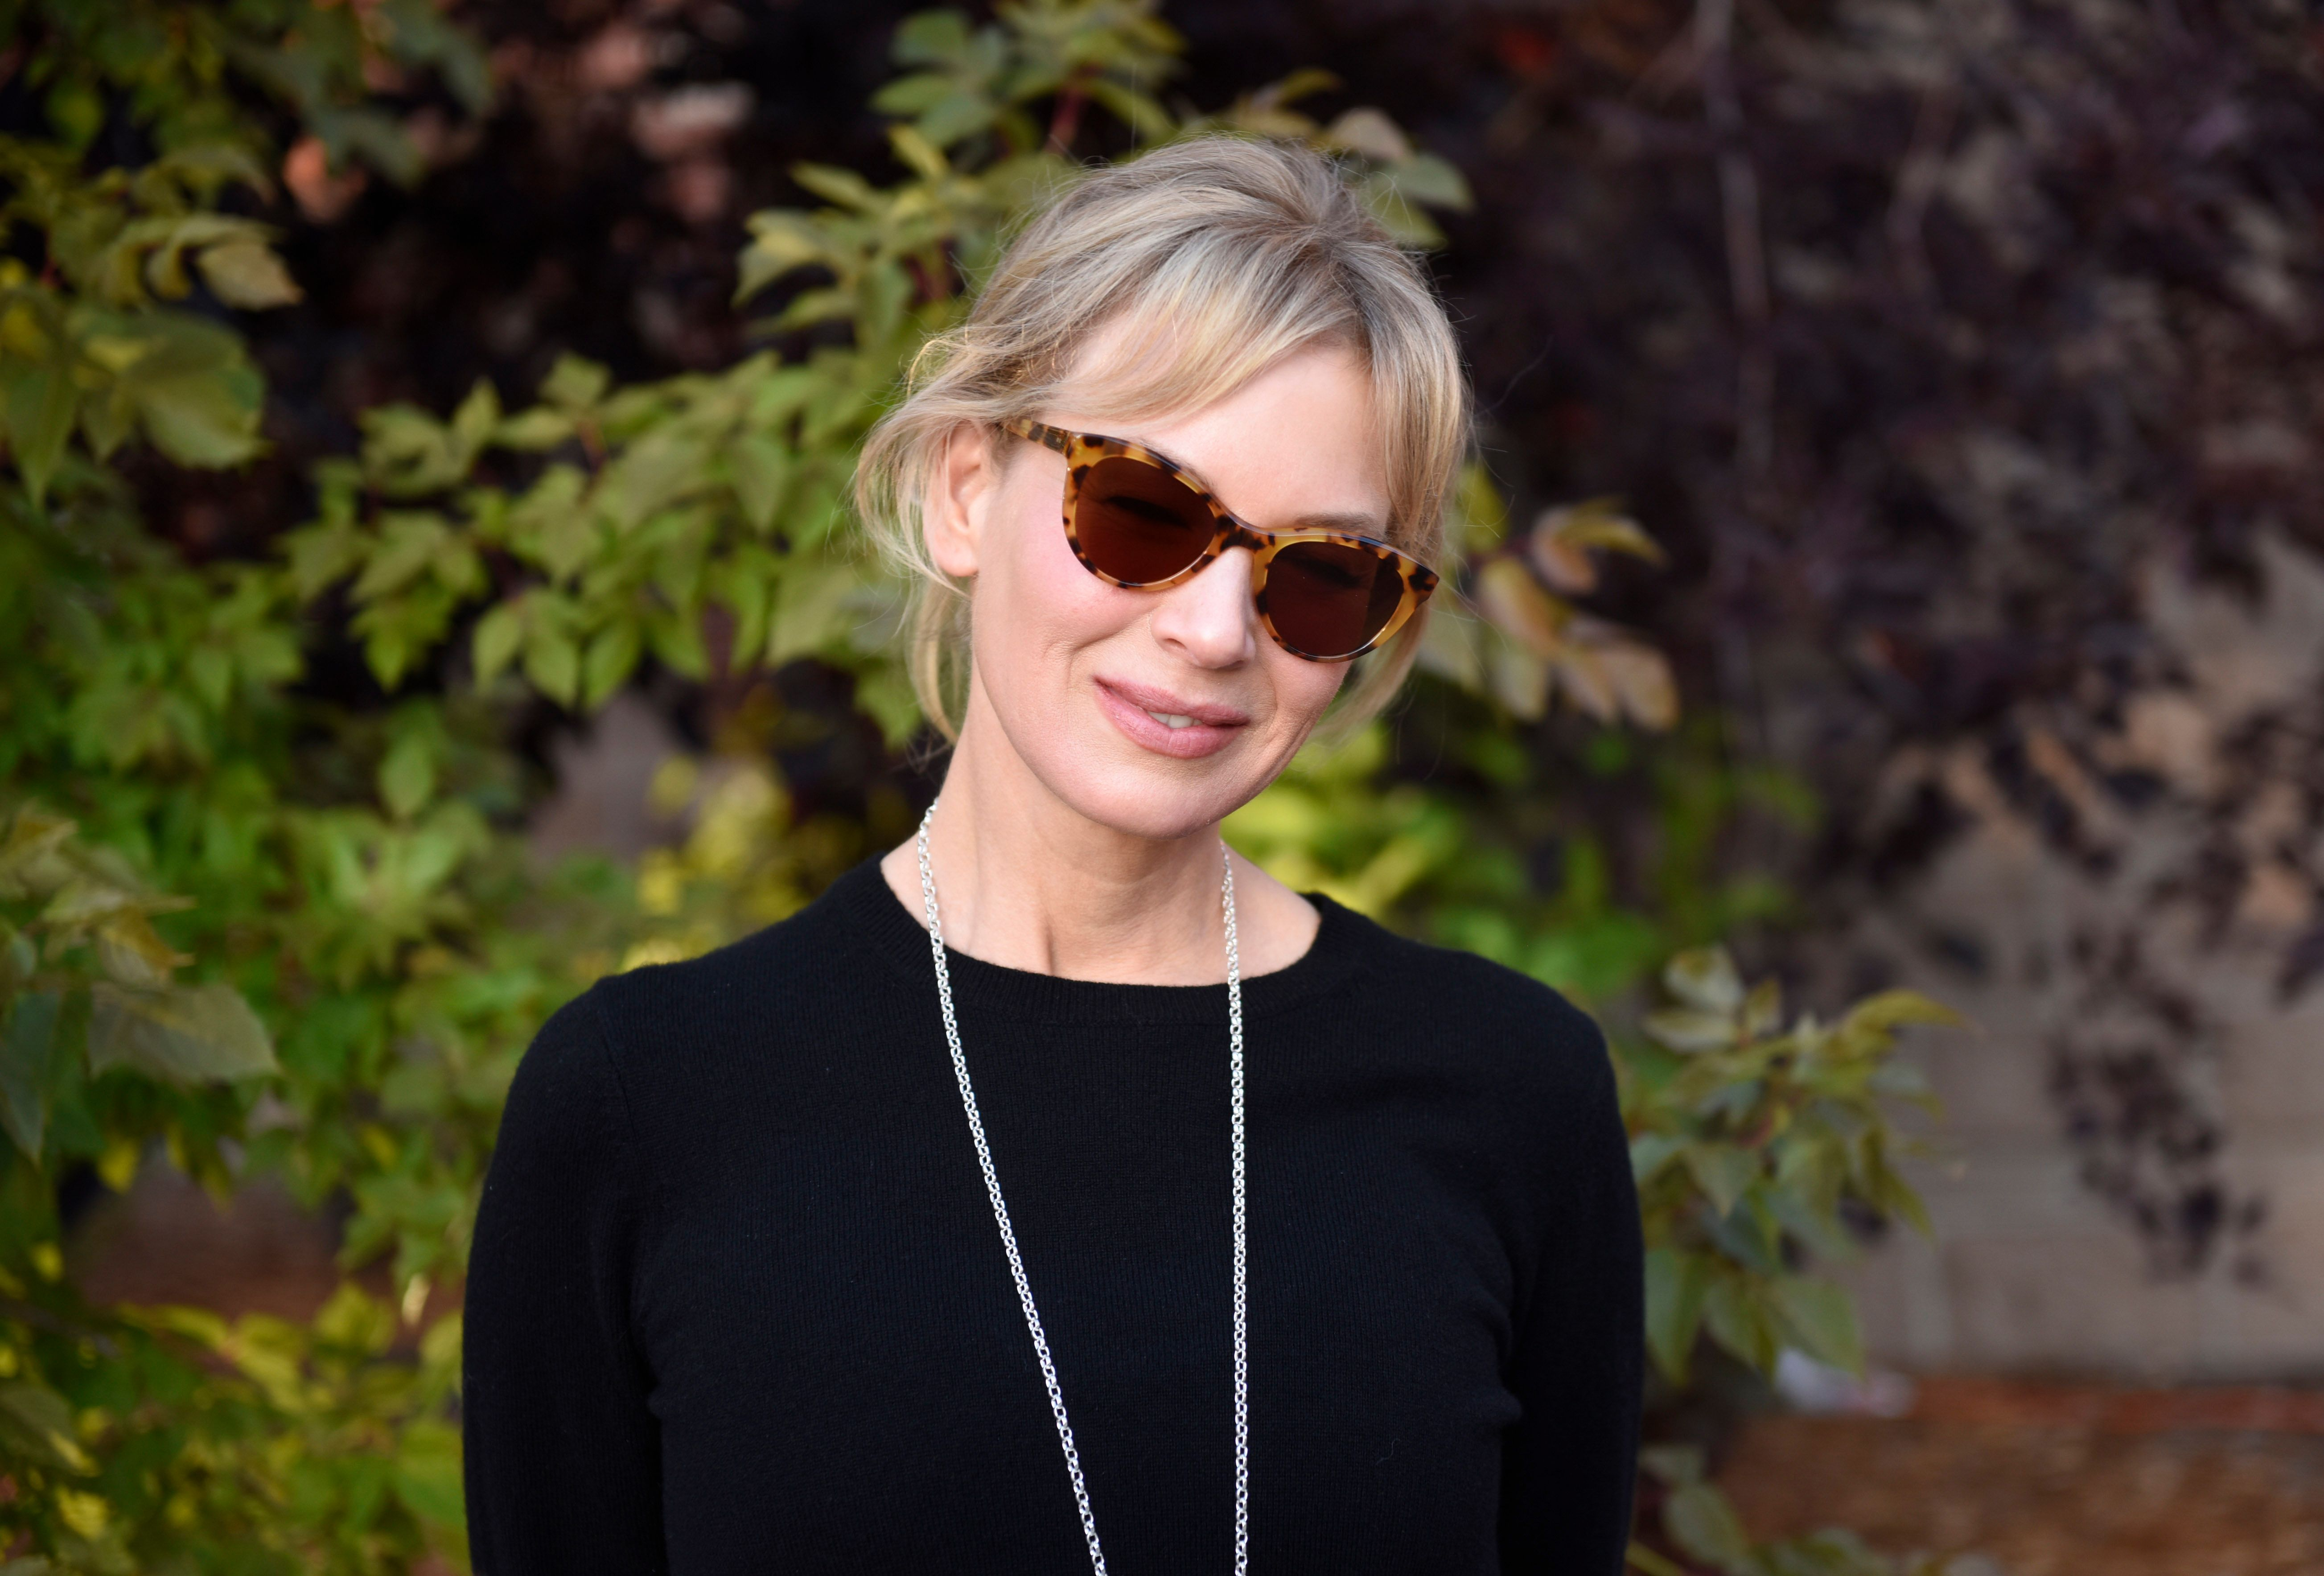 Renee Zellweger at the Telluride Film Festival 2019 on August 30, 2019 | Photo: Getty Images